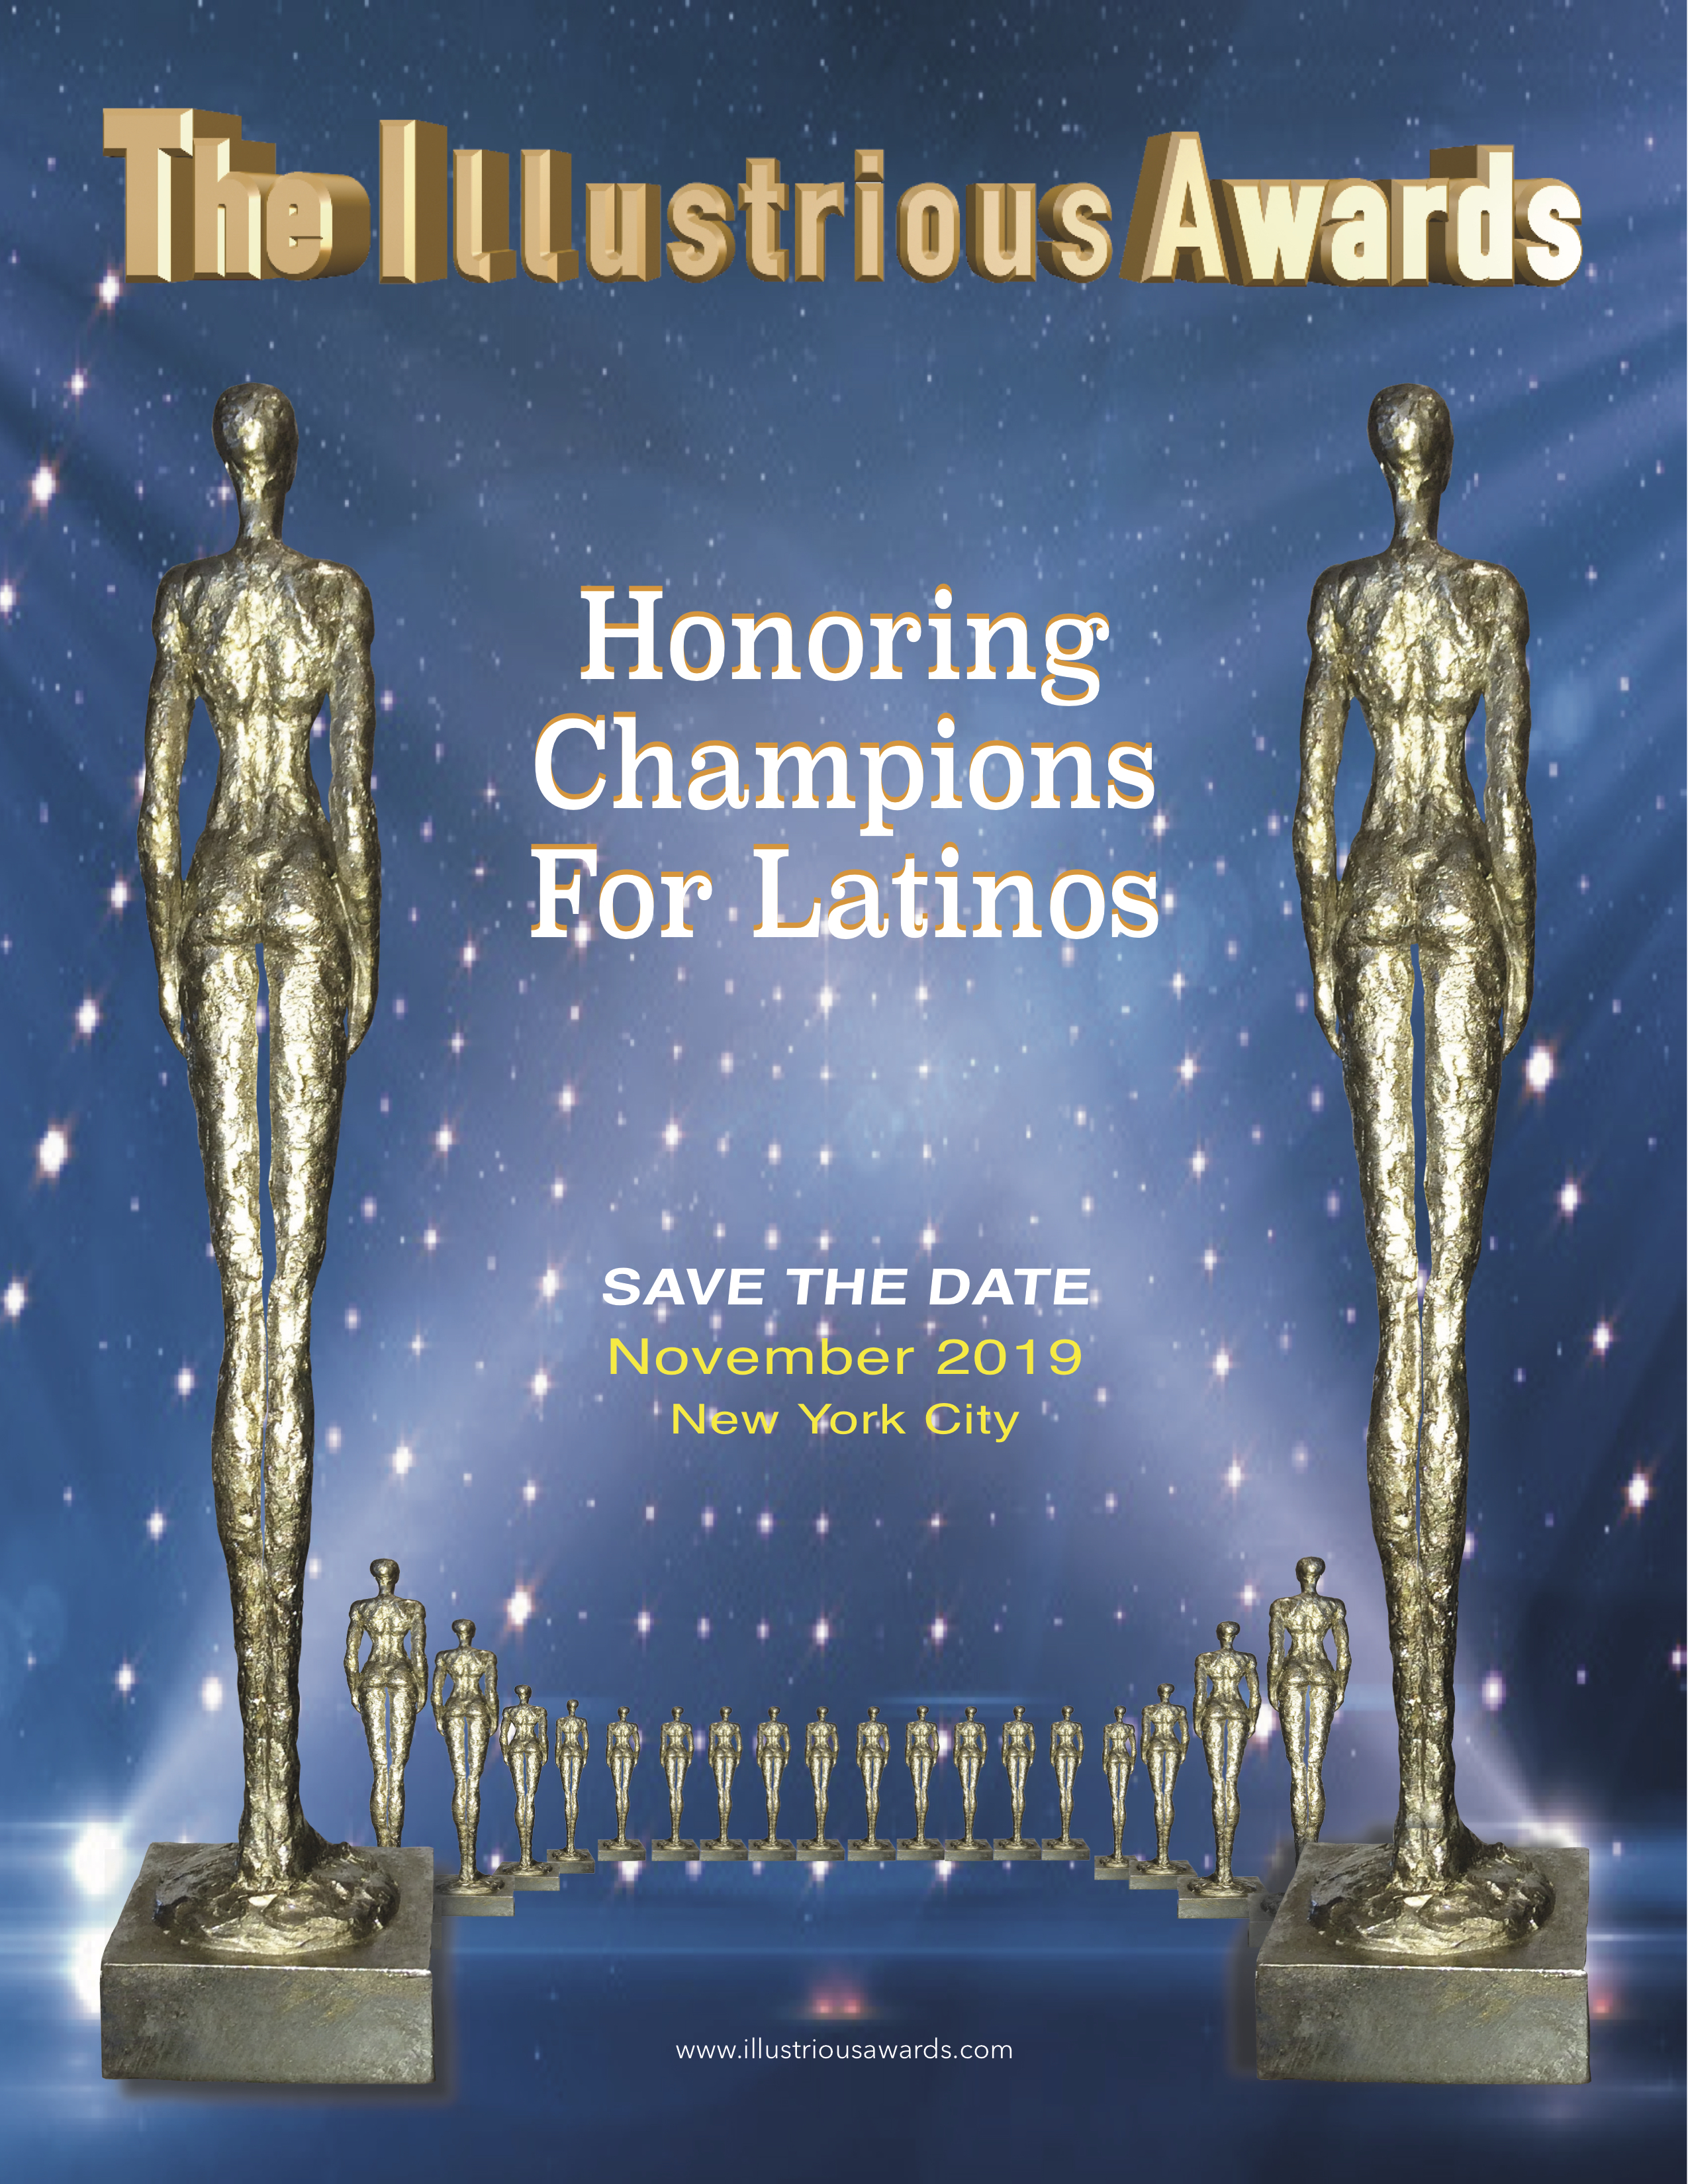 The Illustrious Awards- Honoring Champions for Latinos